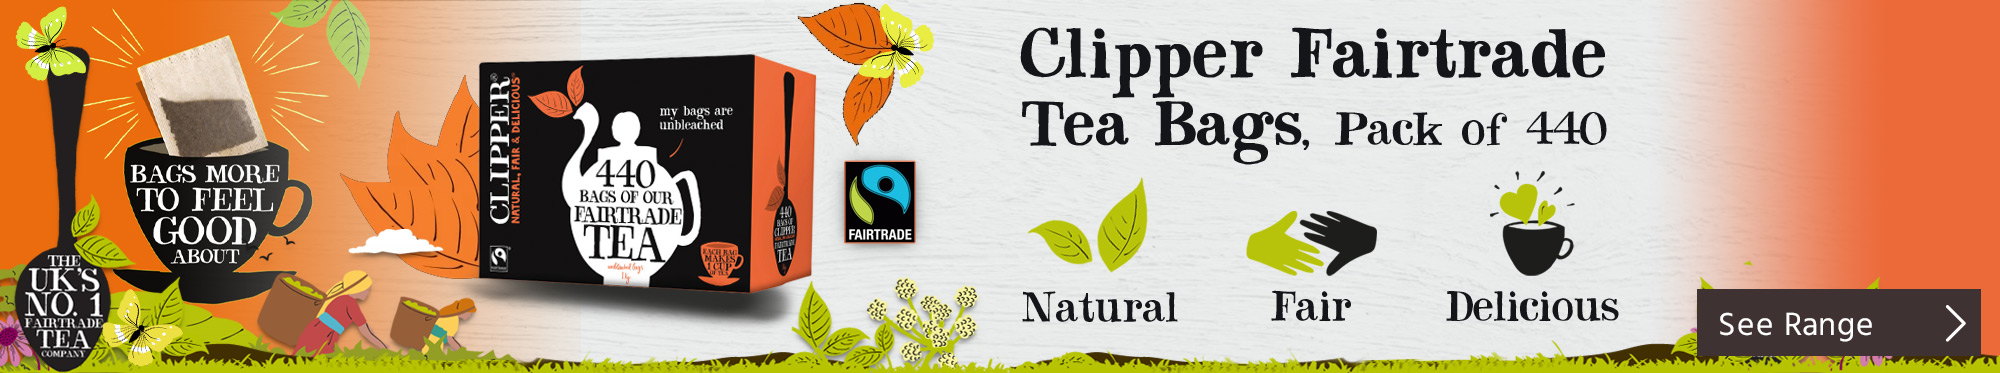 Clipper Fairtrade Tea Bags, Pack of 440 <TAG>FROM</TAG>